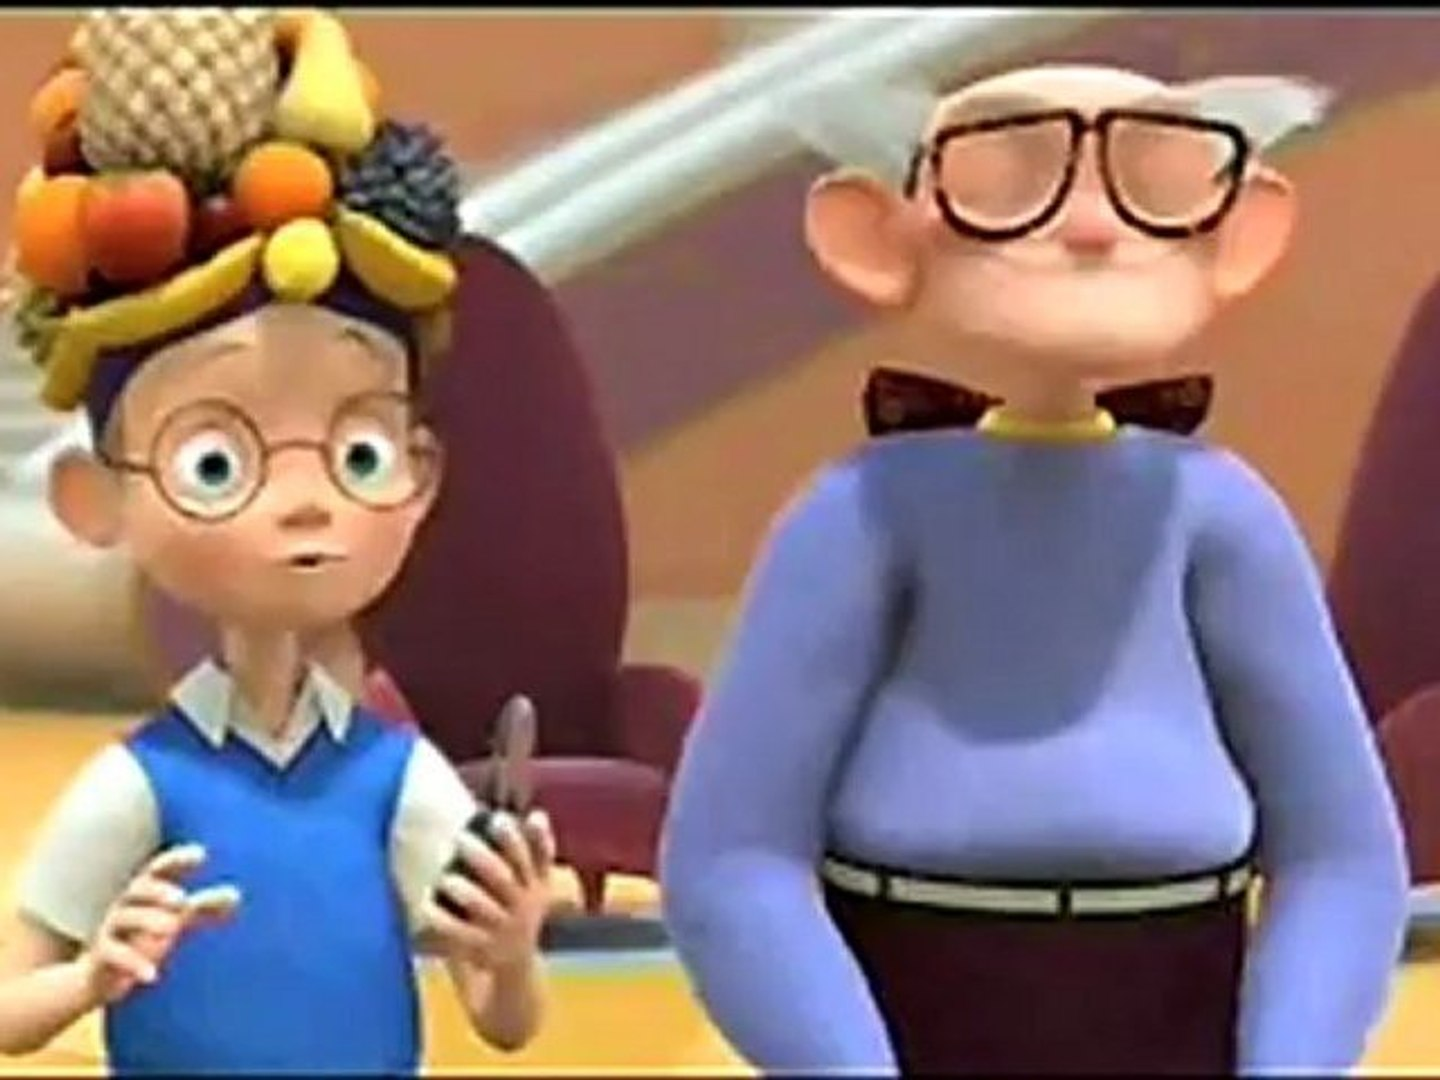 Meet the Robinsons - Behind the scenes